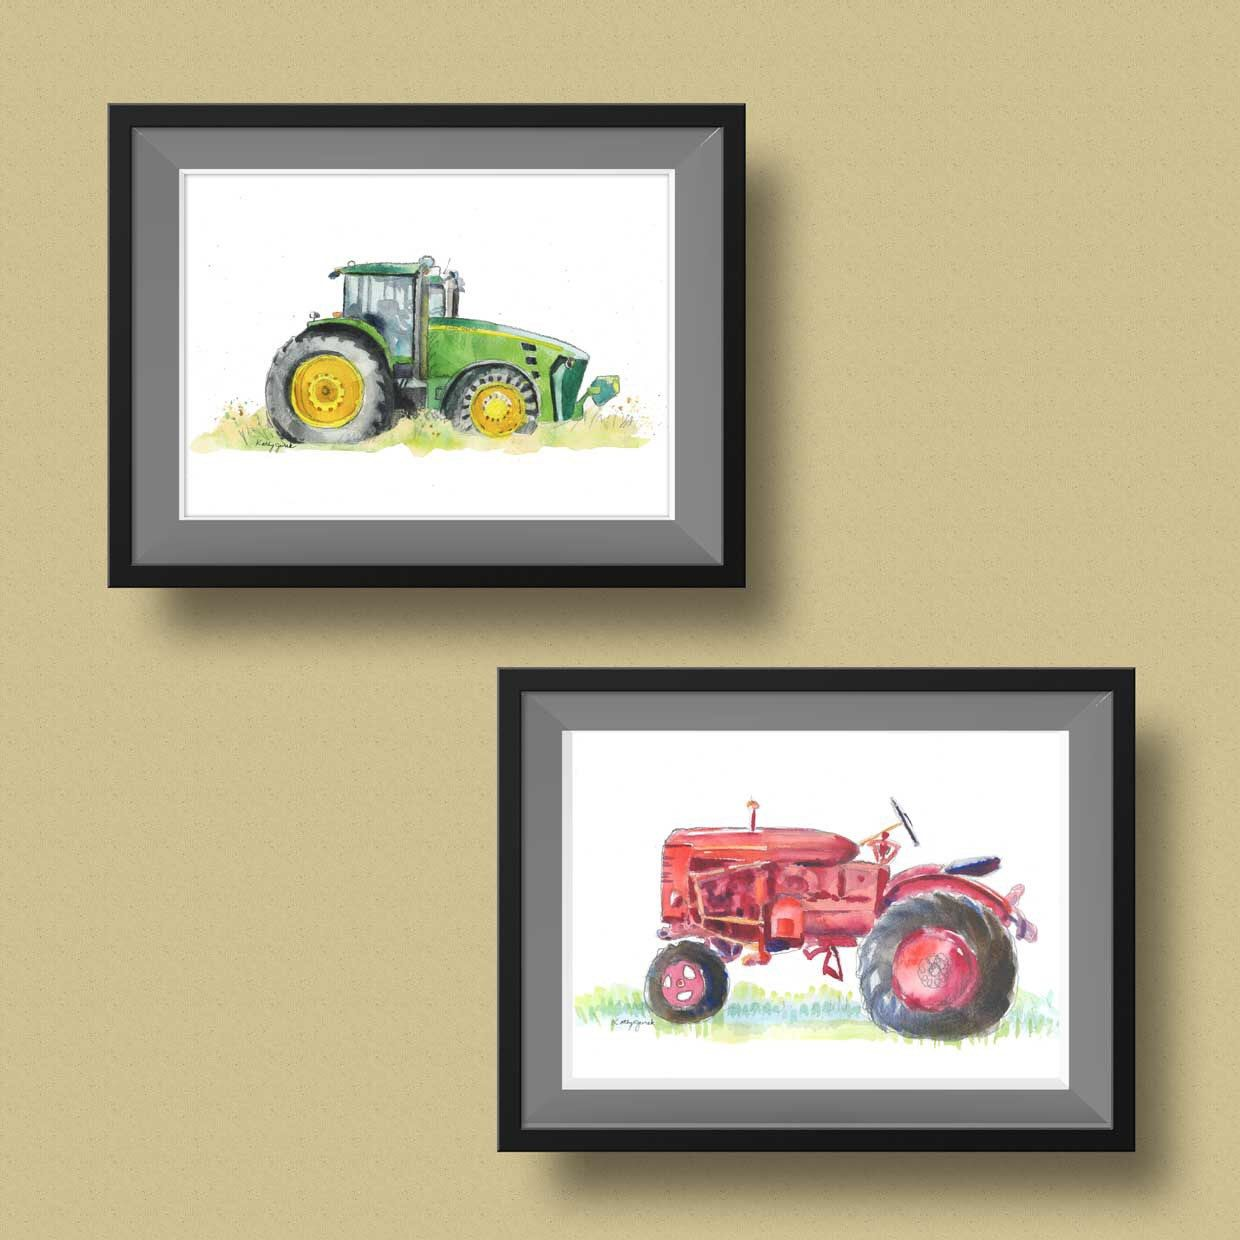 Red Farm Tractor Print - Vintage Farm Tractor Watercolor Painting ...